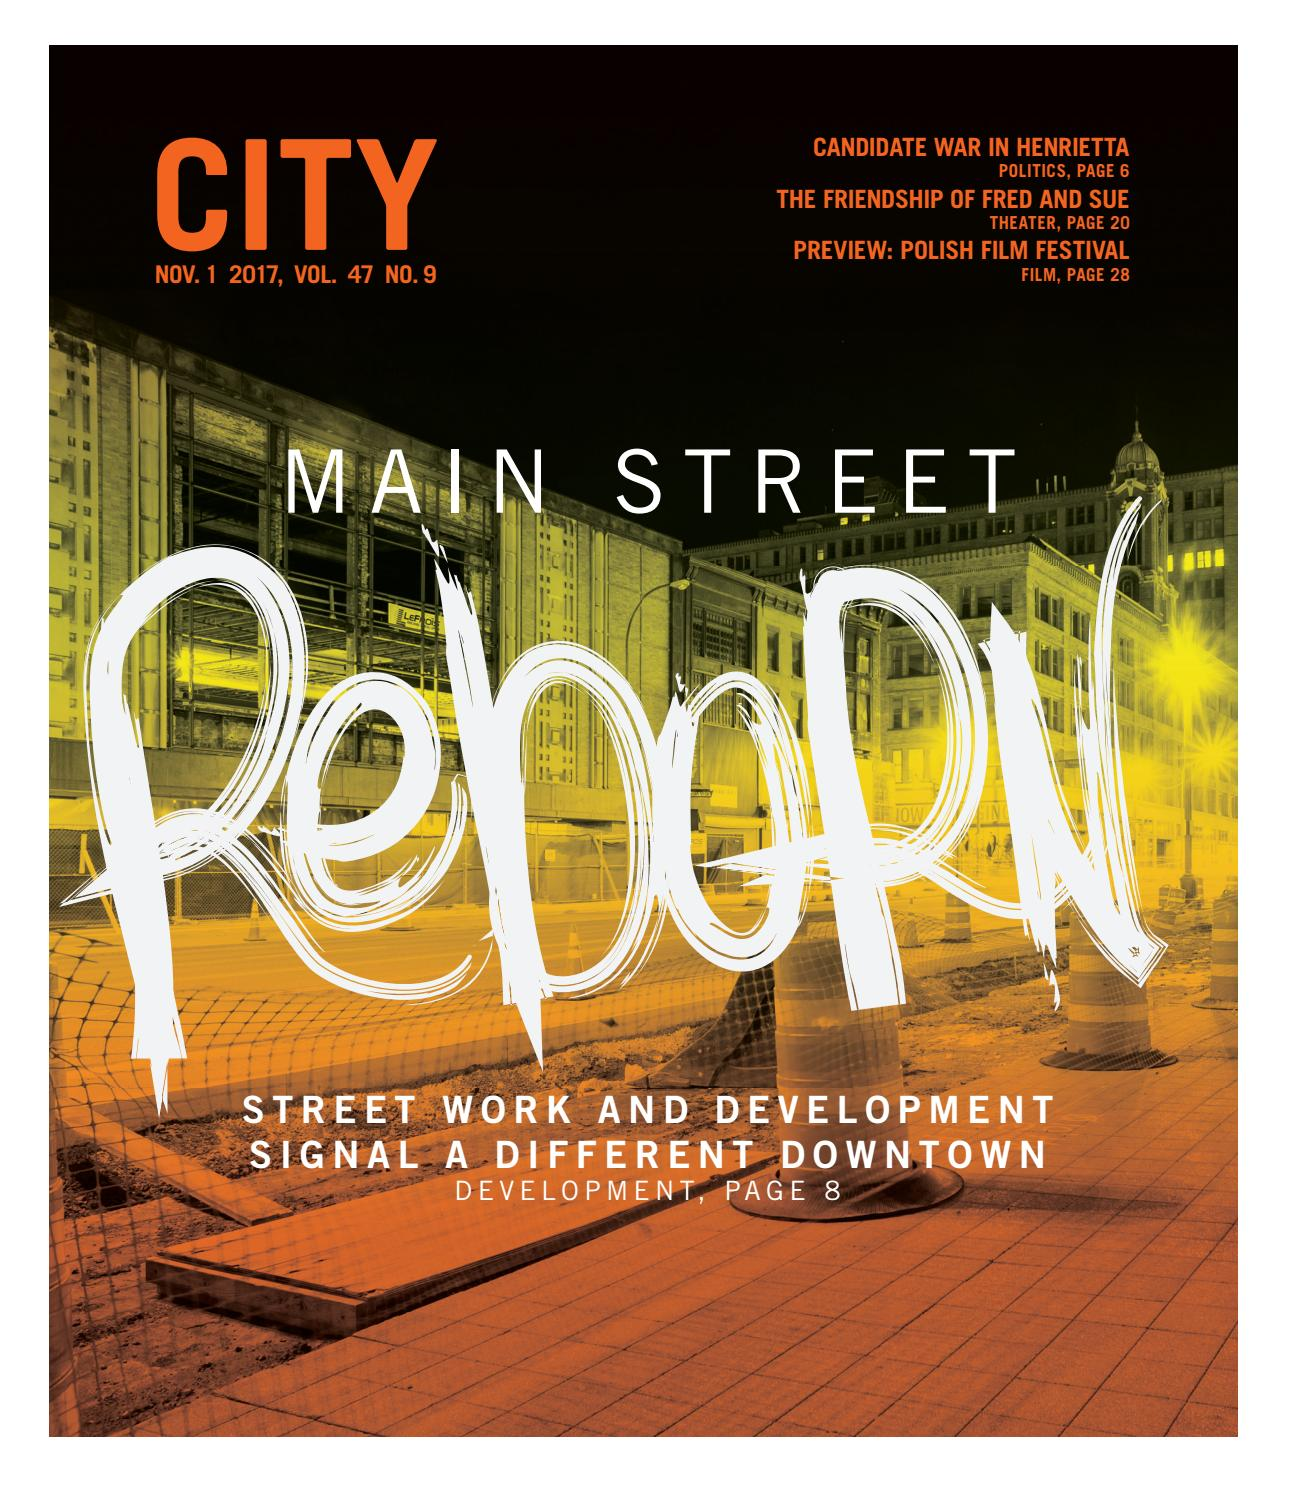 Design On Stock Blizz Bank.City Newspaper November 1 7 2017 By Rochester City Newspaper